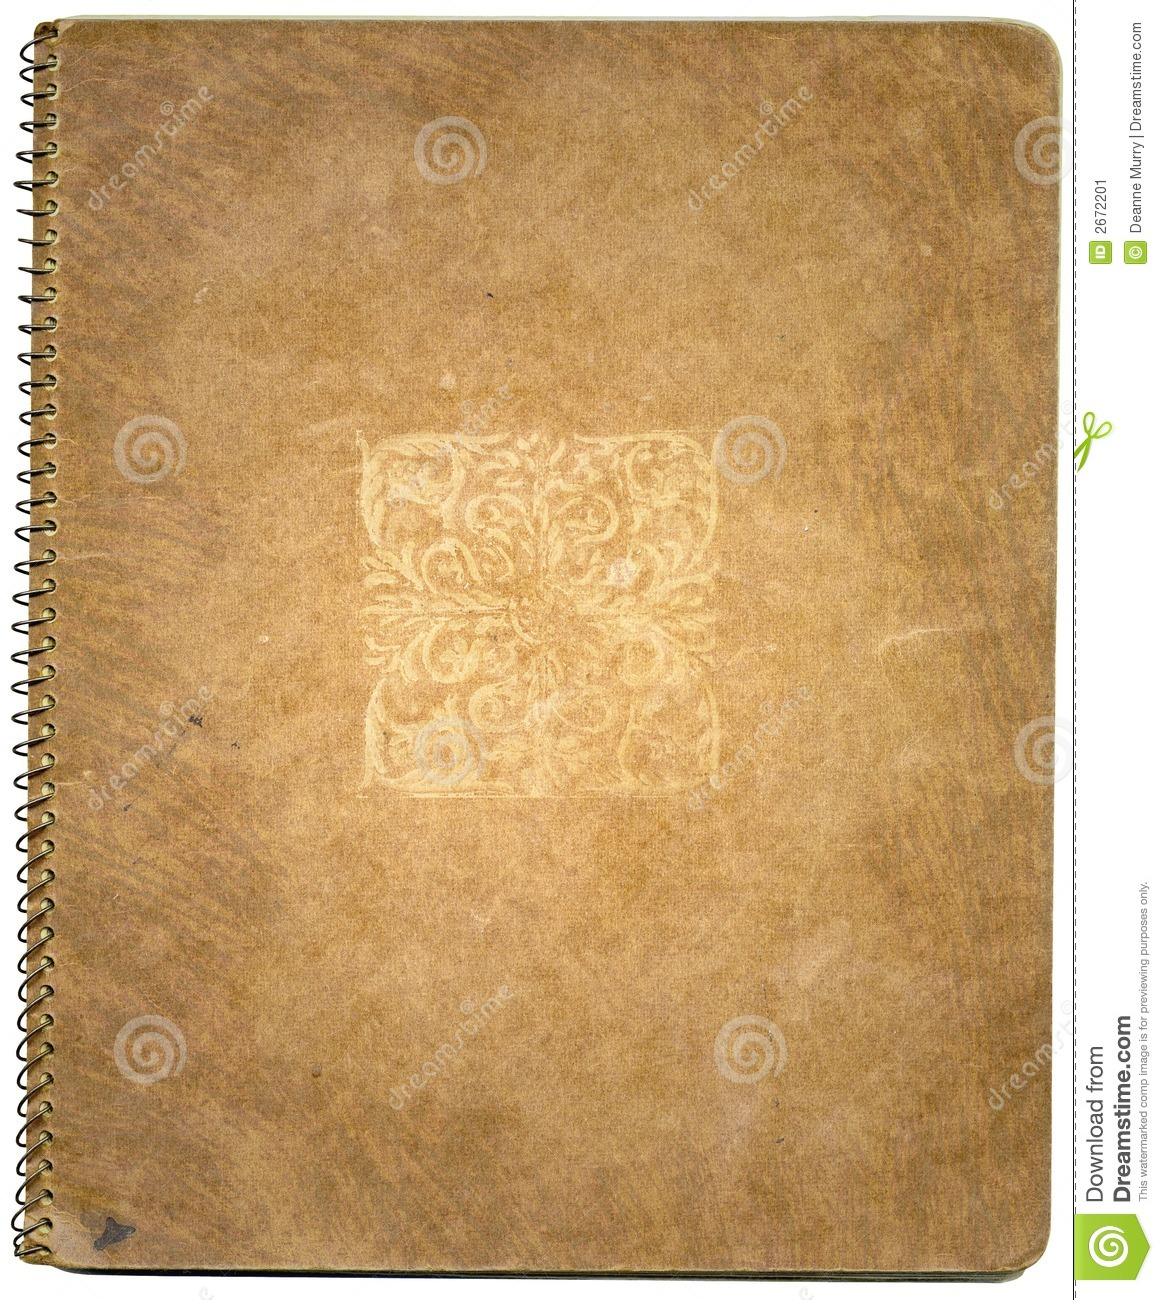 Old Book Cover stock image. Image of worn, vintage, cover - 2672201